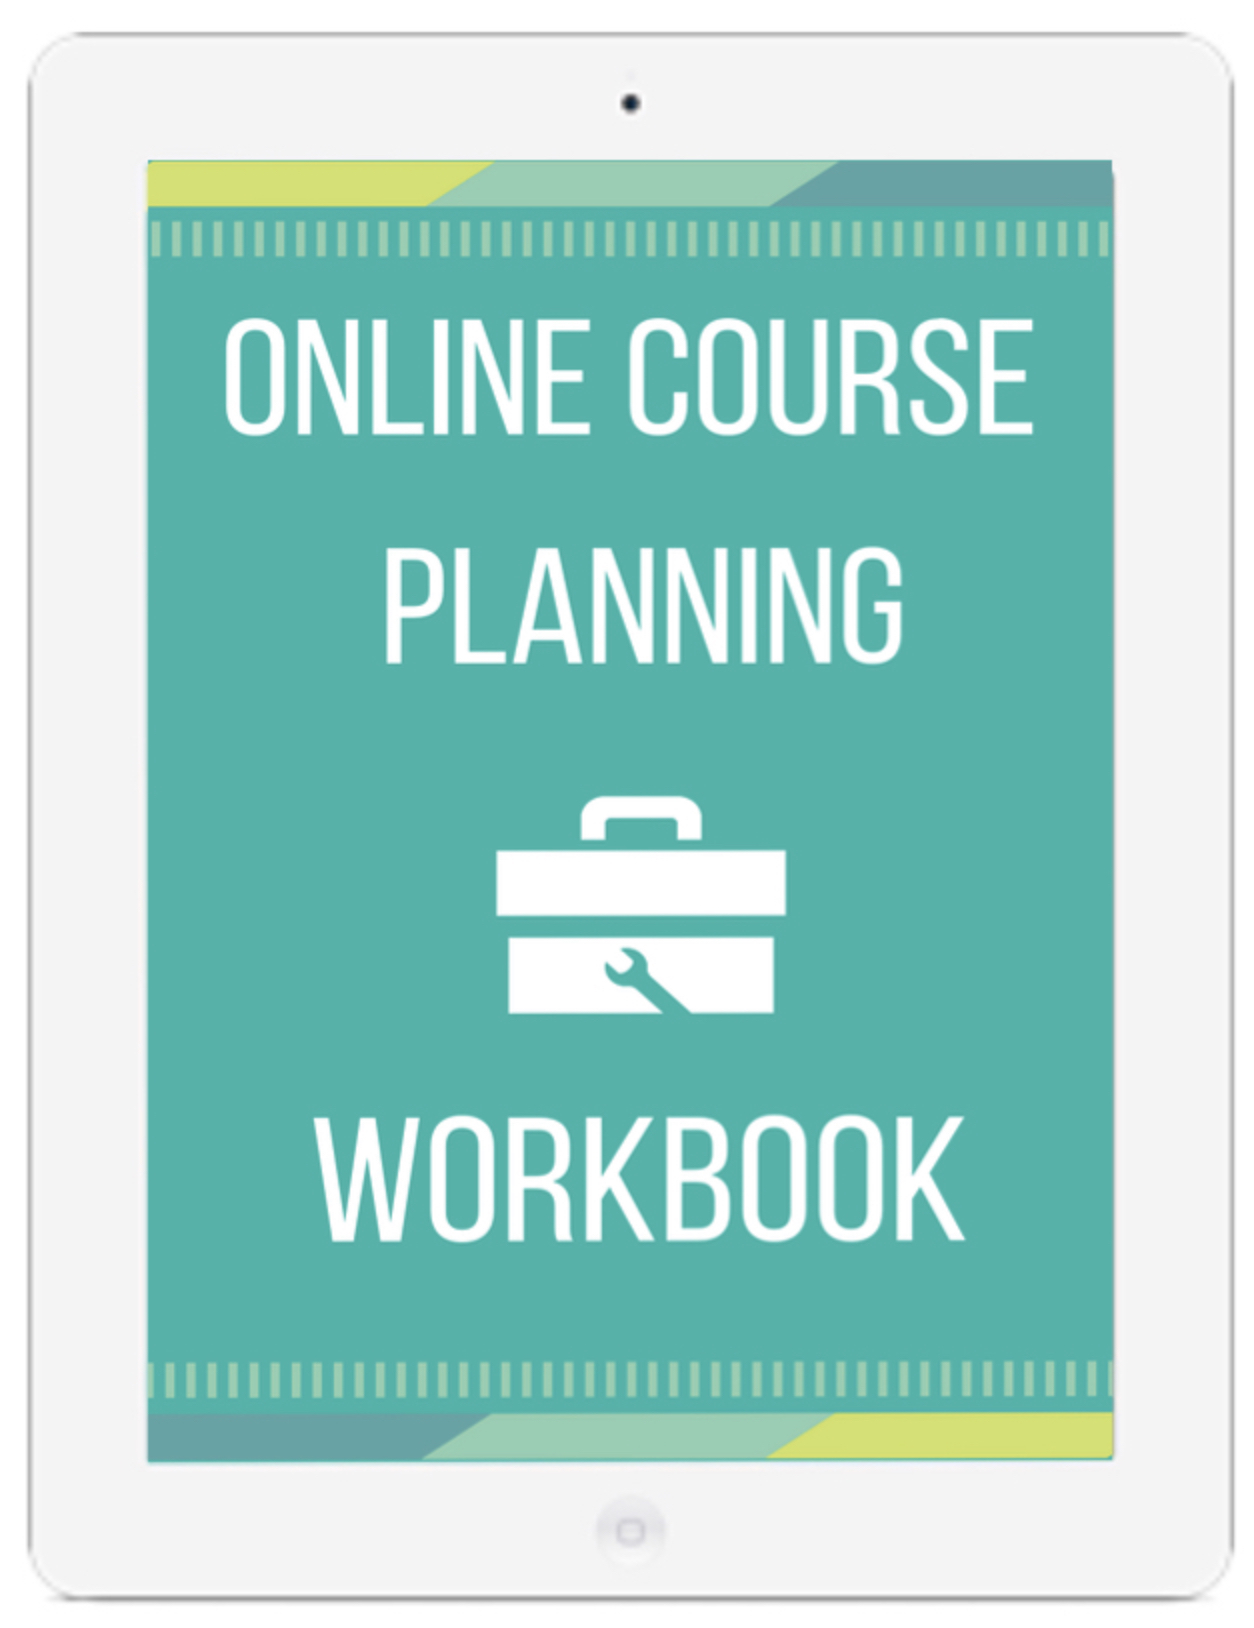 Get started with my free Online Course Planning Workbook.